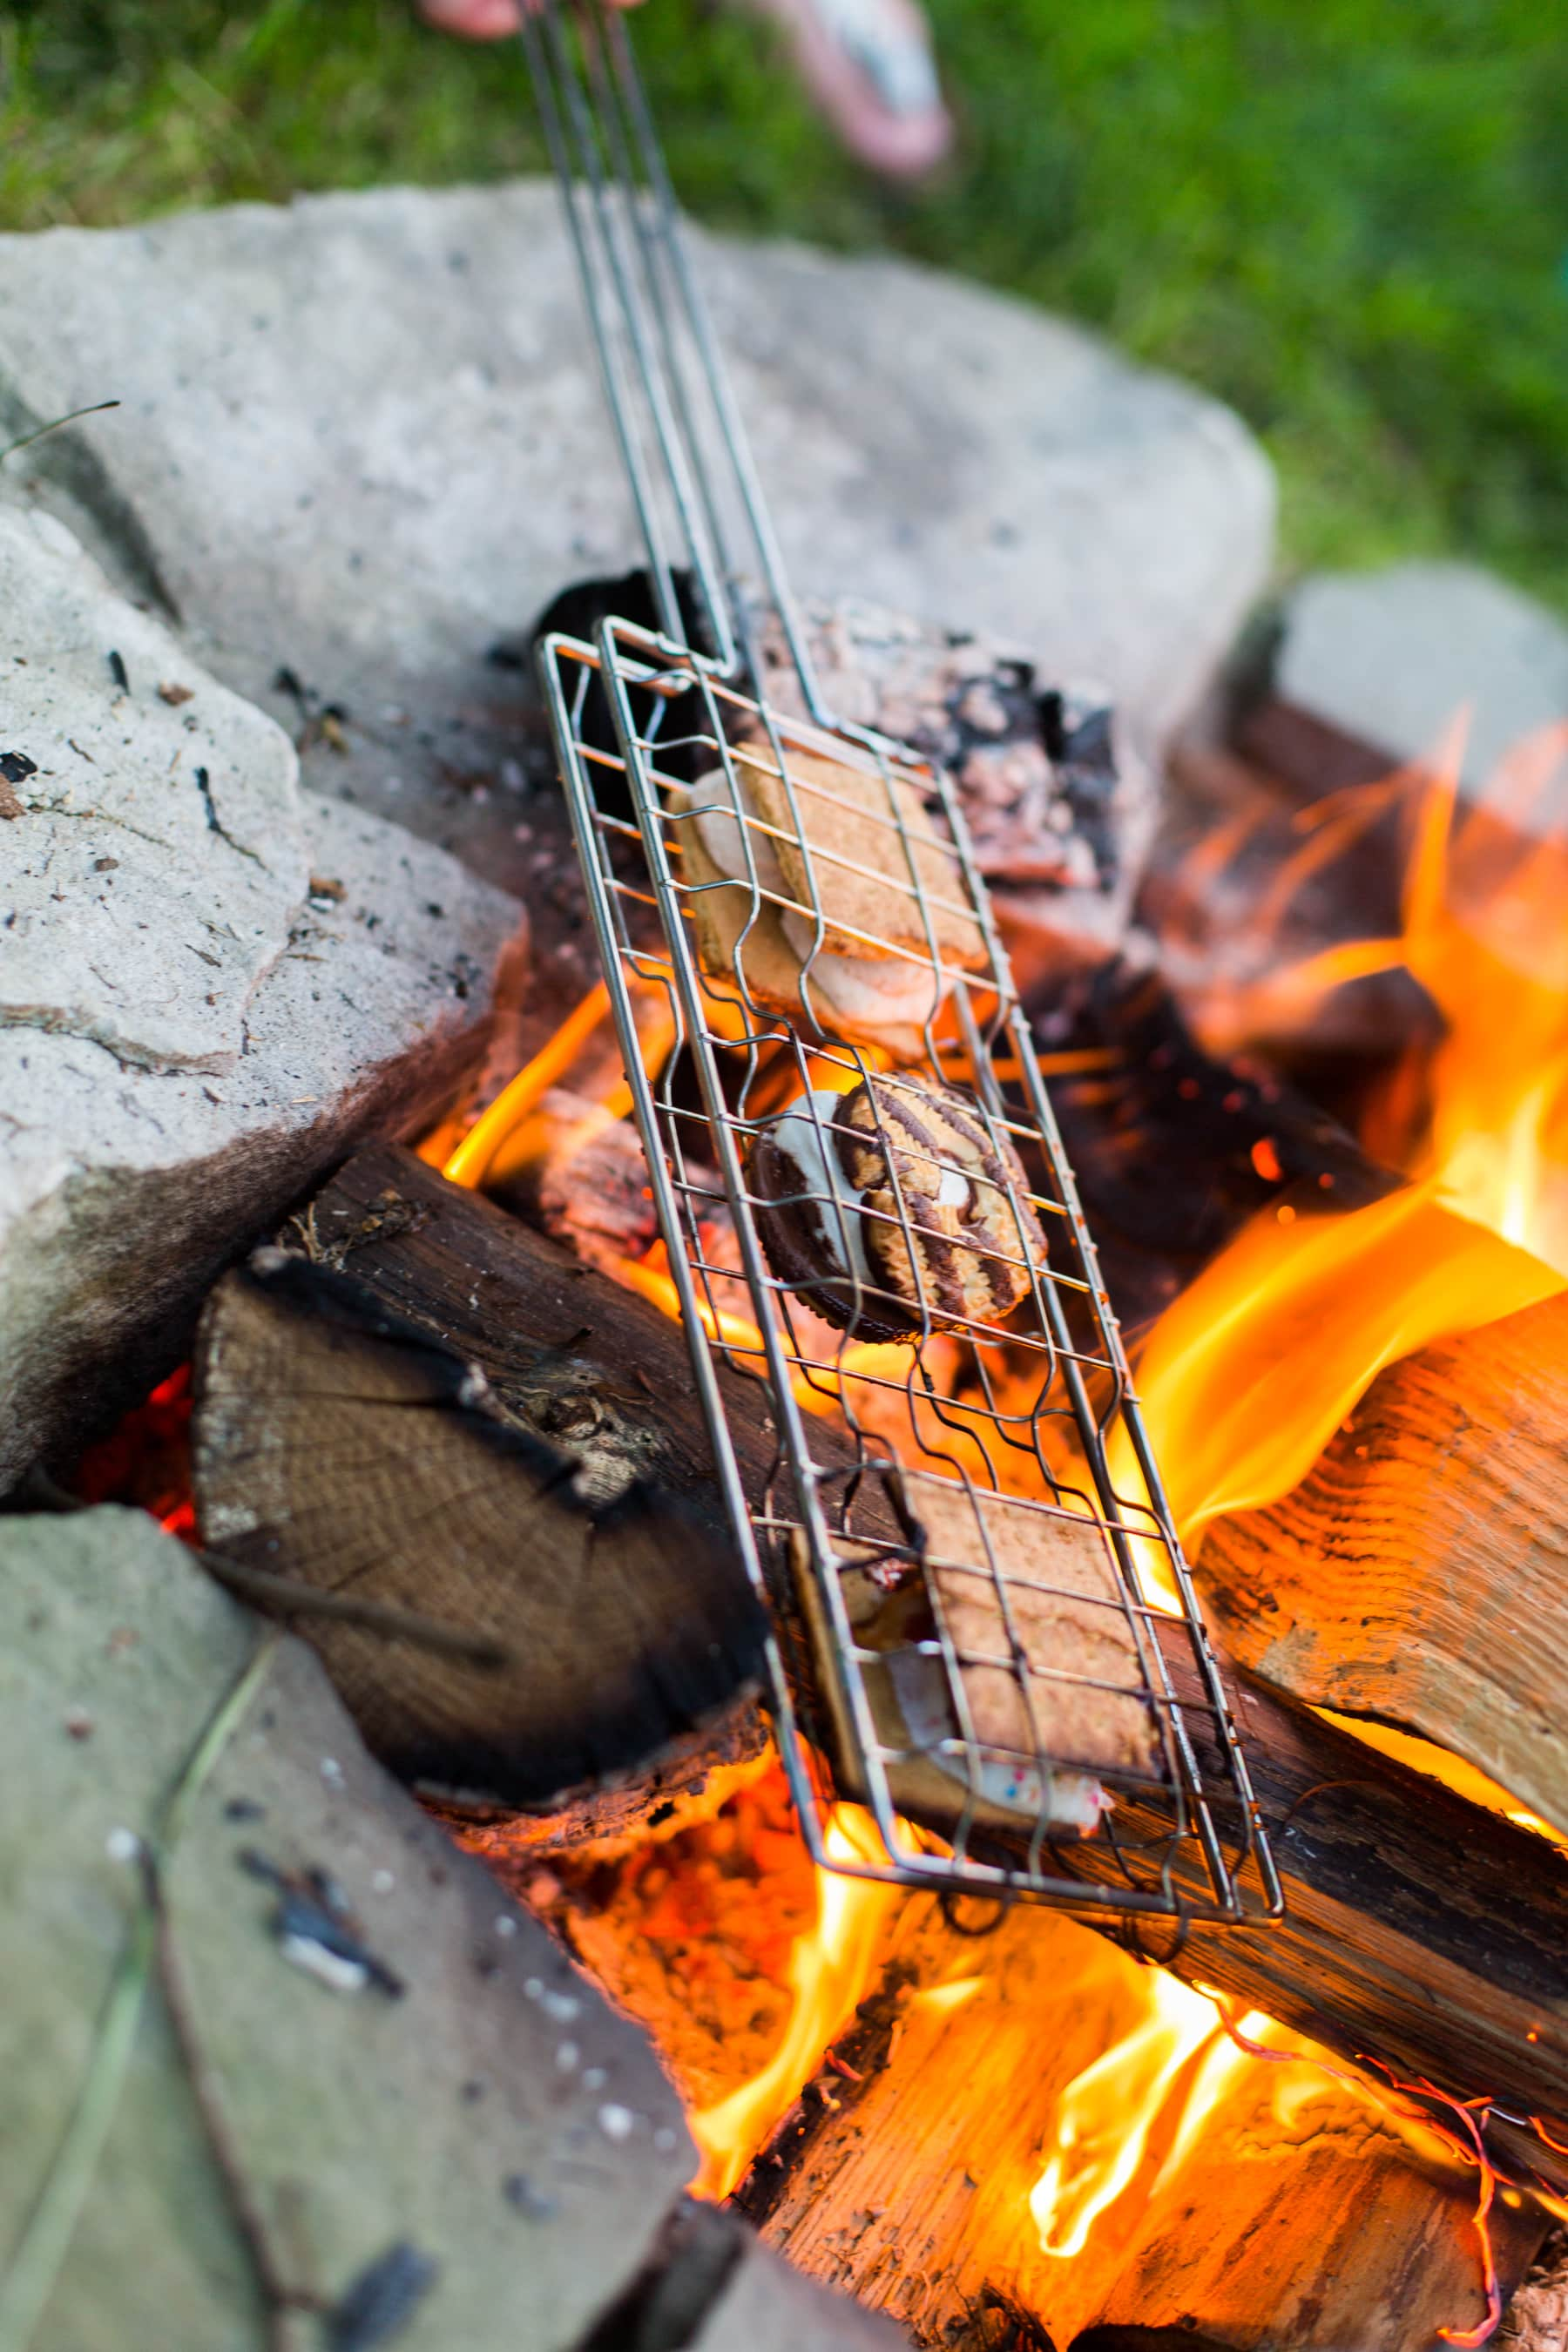 A Backyard S'mores Party: Learn From My Three Mistakes